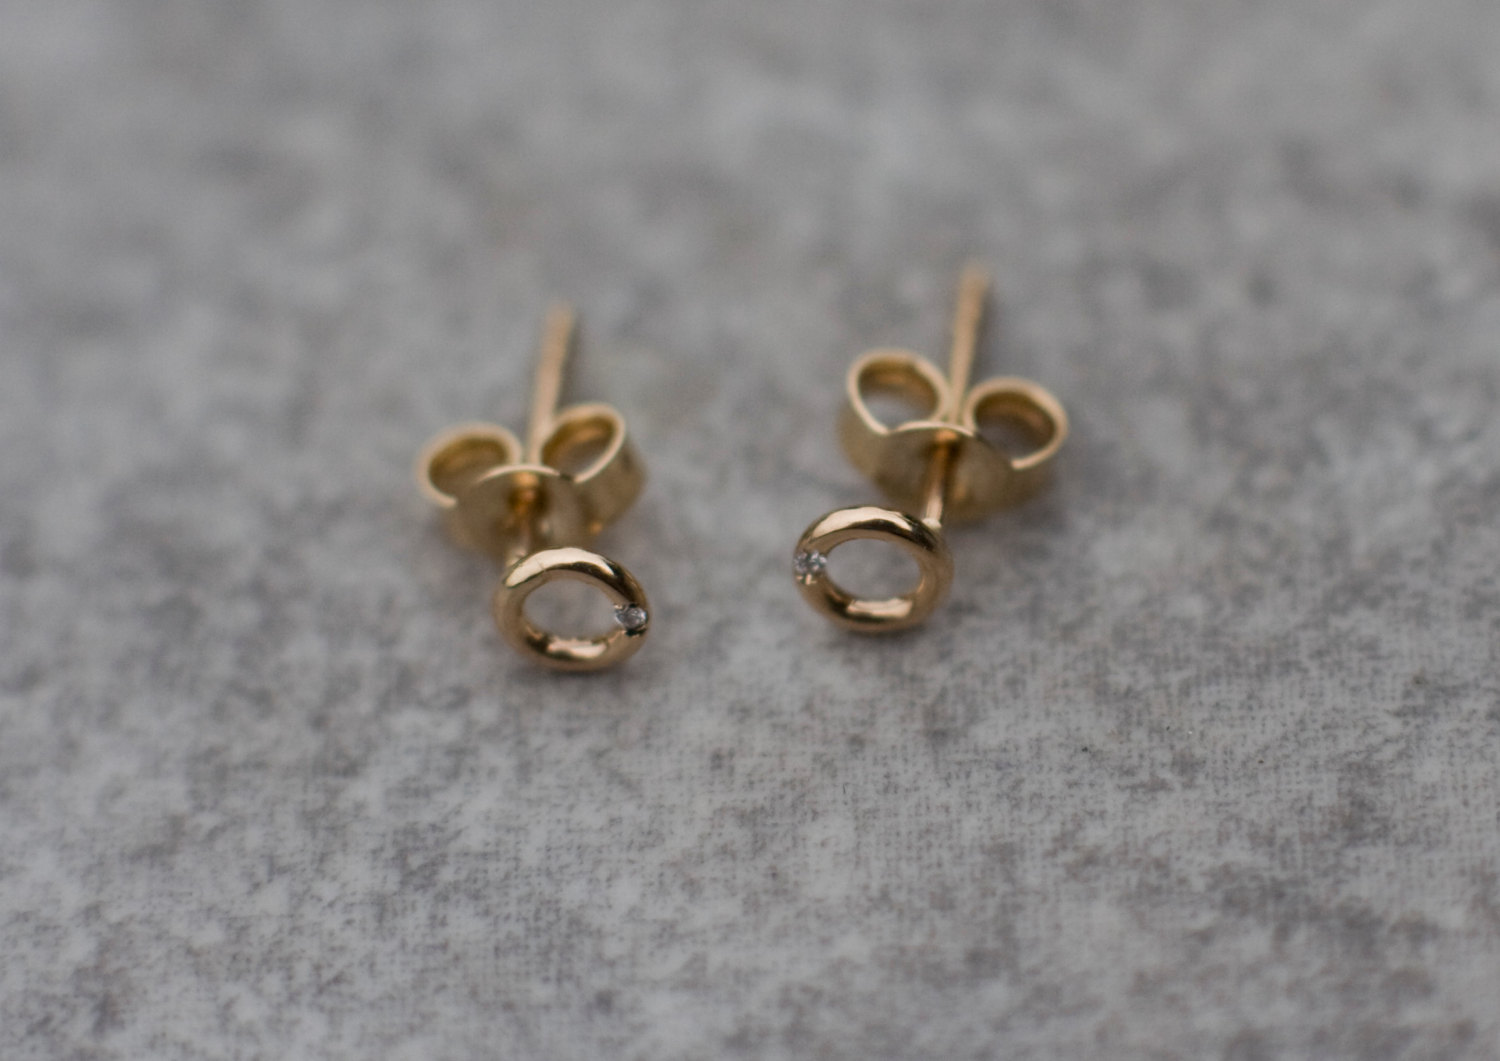 strut earrings jewelry products open circle stud studs gold m